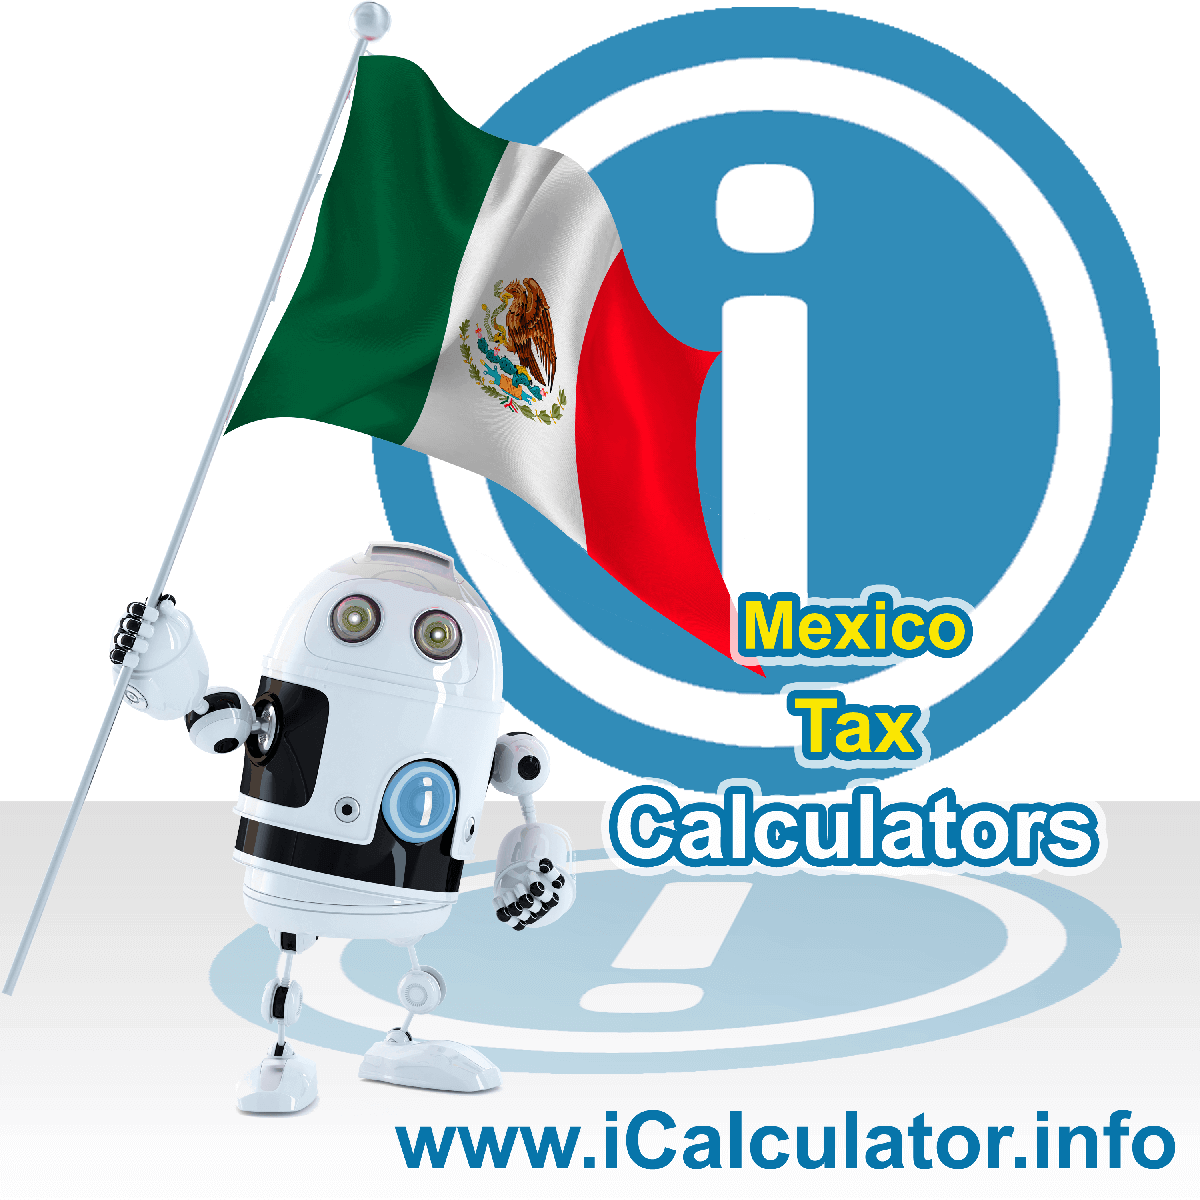 Mexico Tax Calculator. This image shows the Mexico flag and information relating to the tax formula for the Mexico Tax Calculator